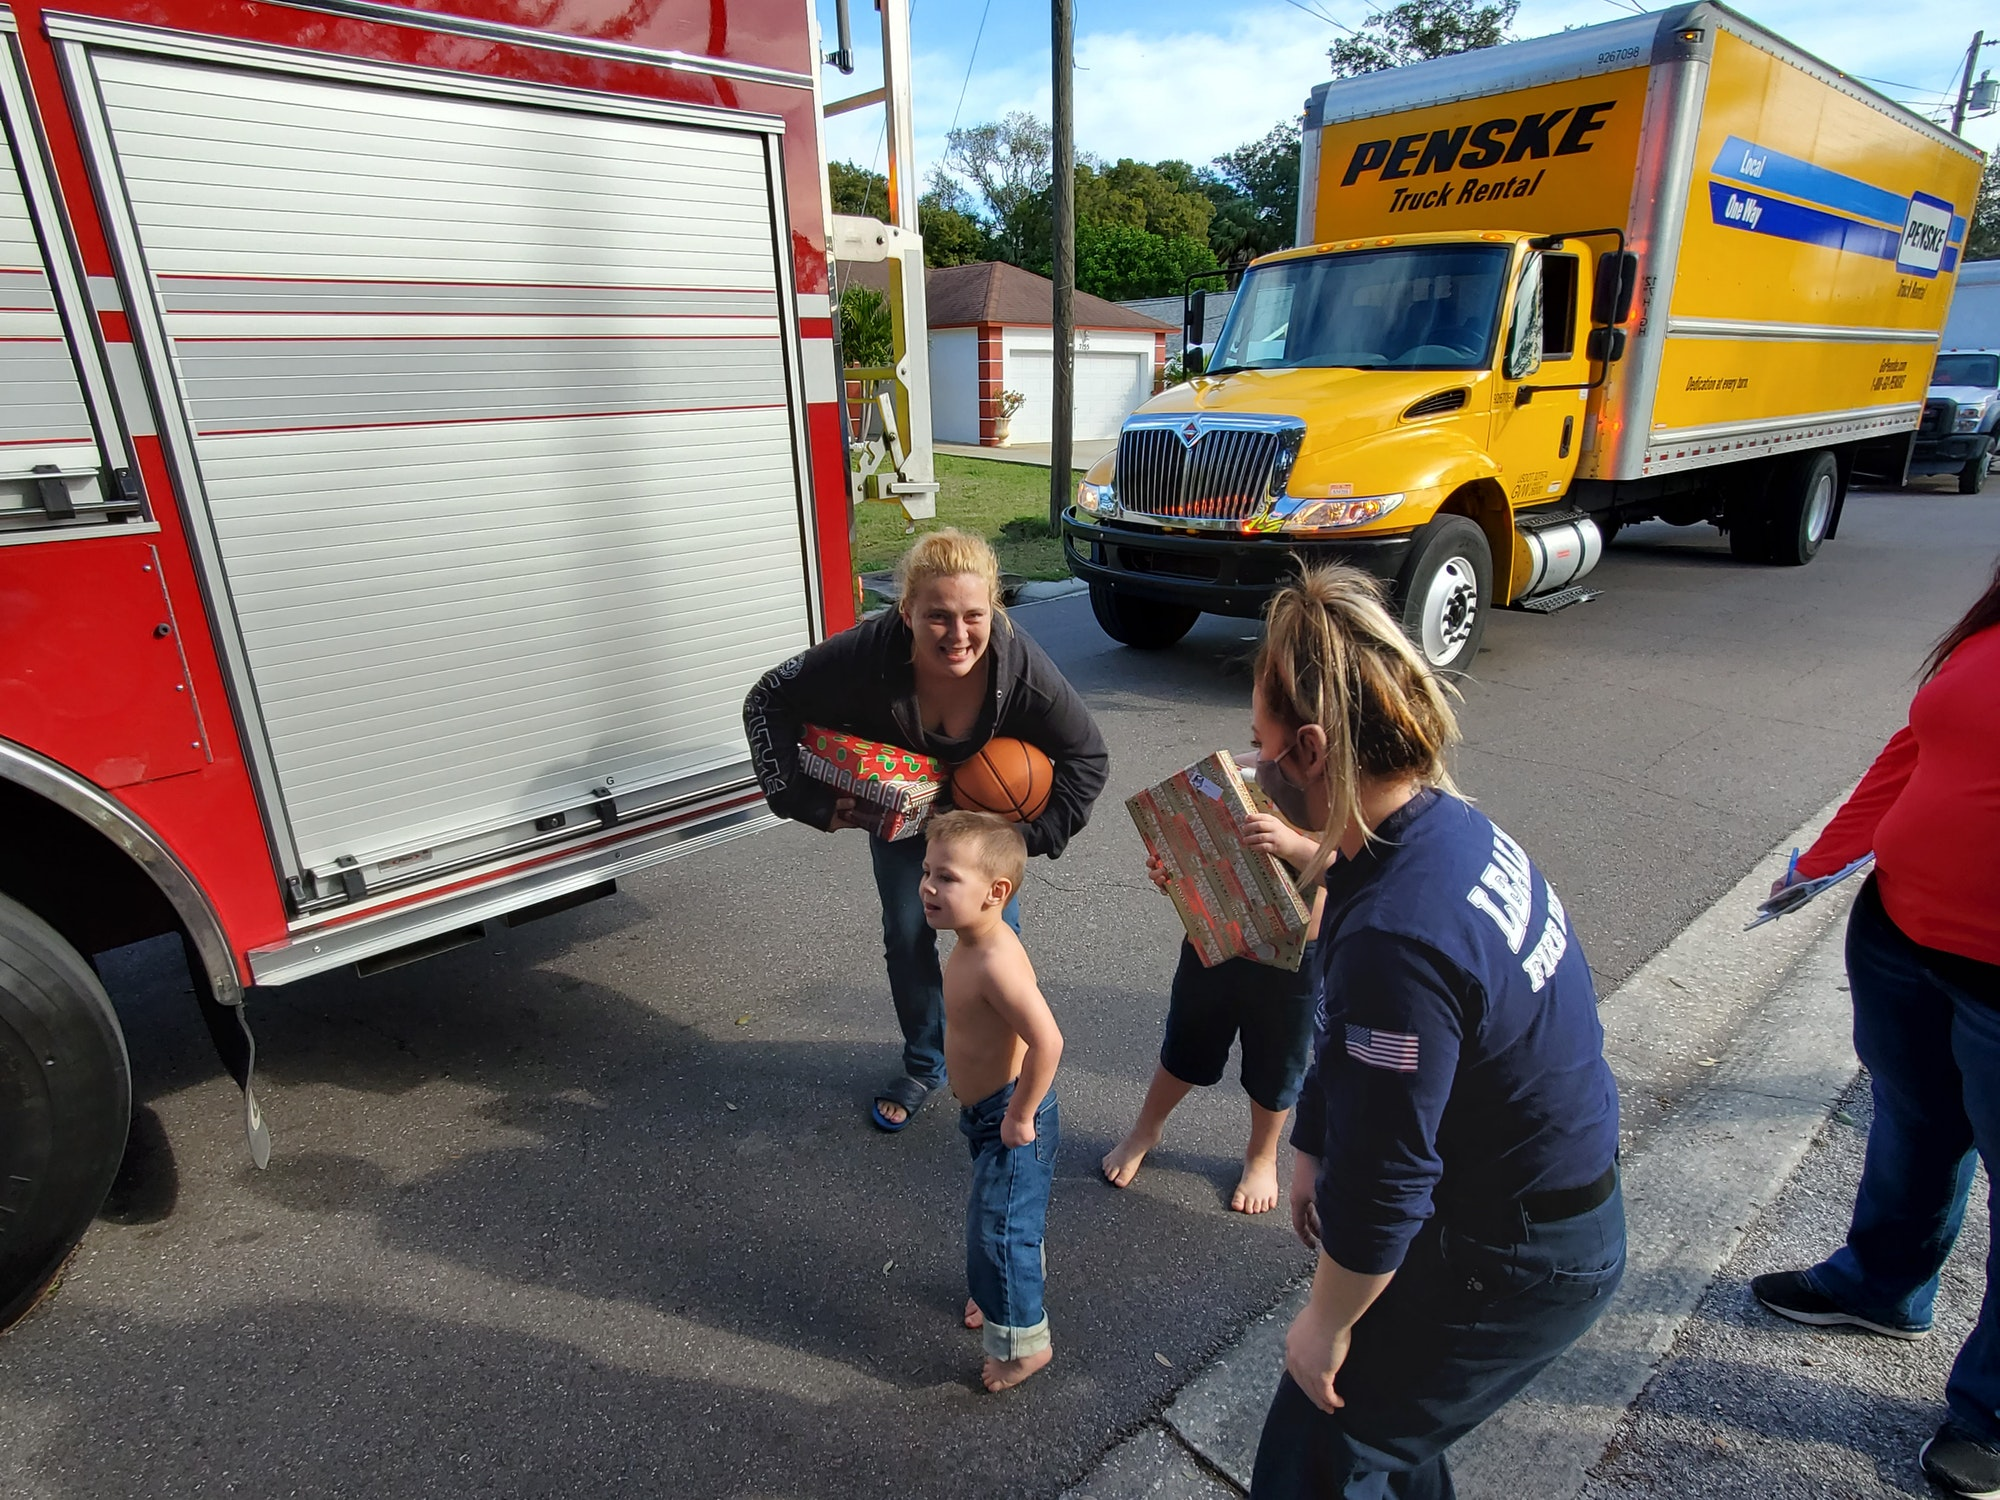 Trucks, firefighter, woman, and two little boys